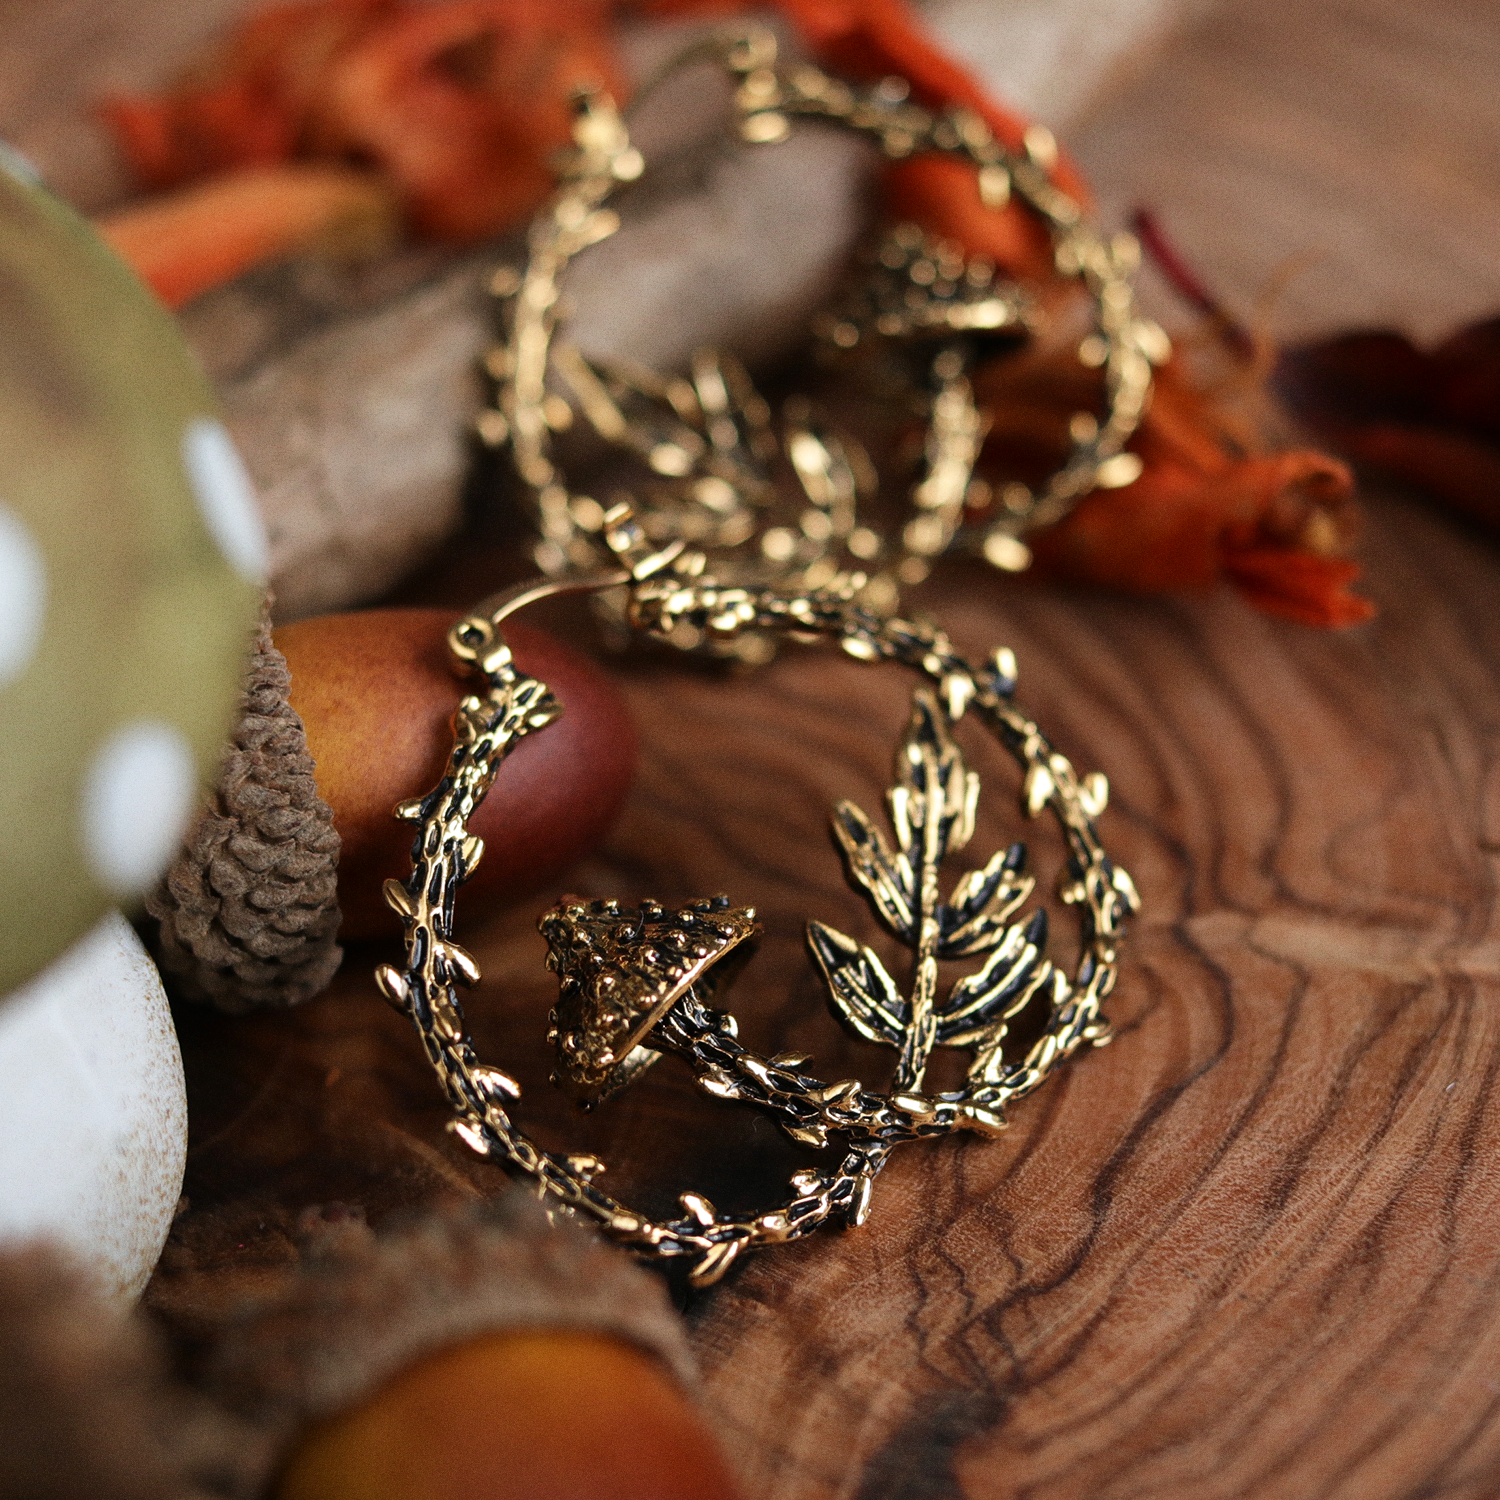 Forest Floor Fern & Mushroom Boho Hoop Earrings | Talent Scout Winner